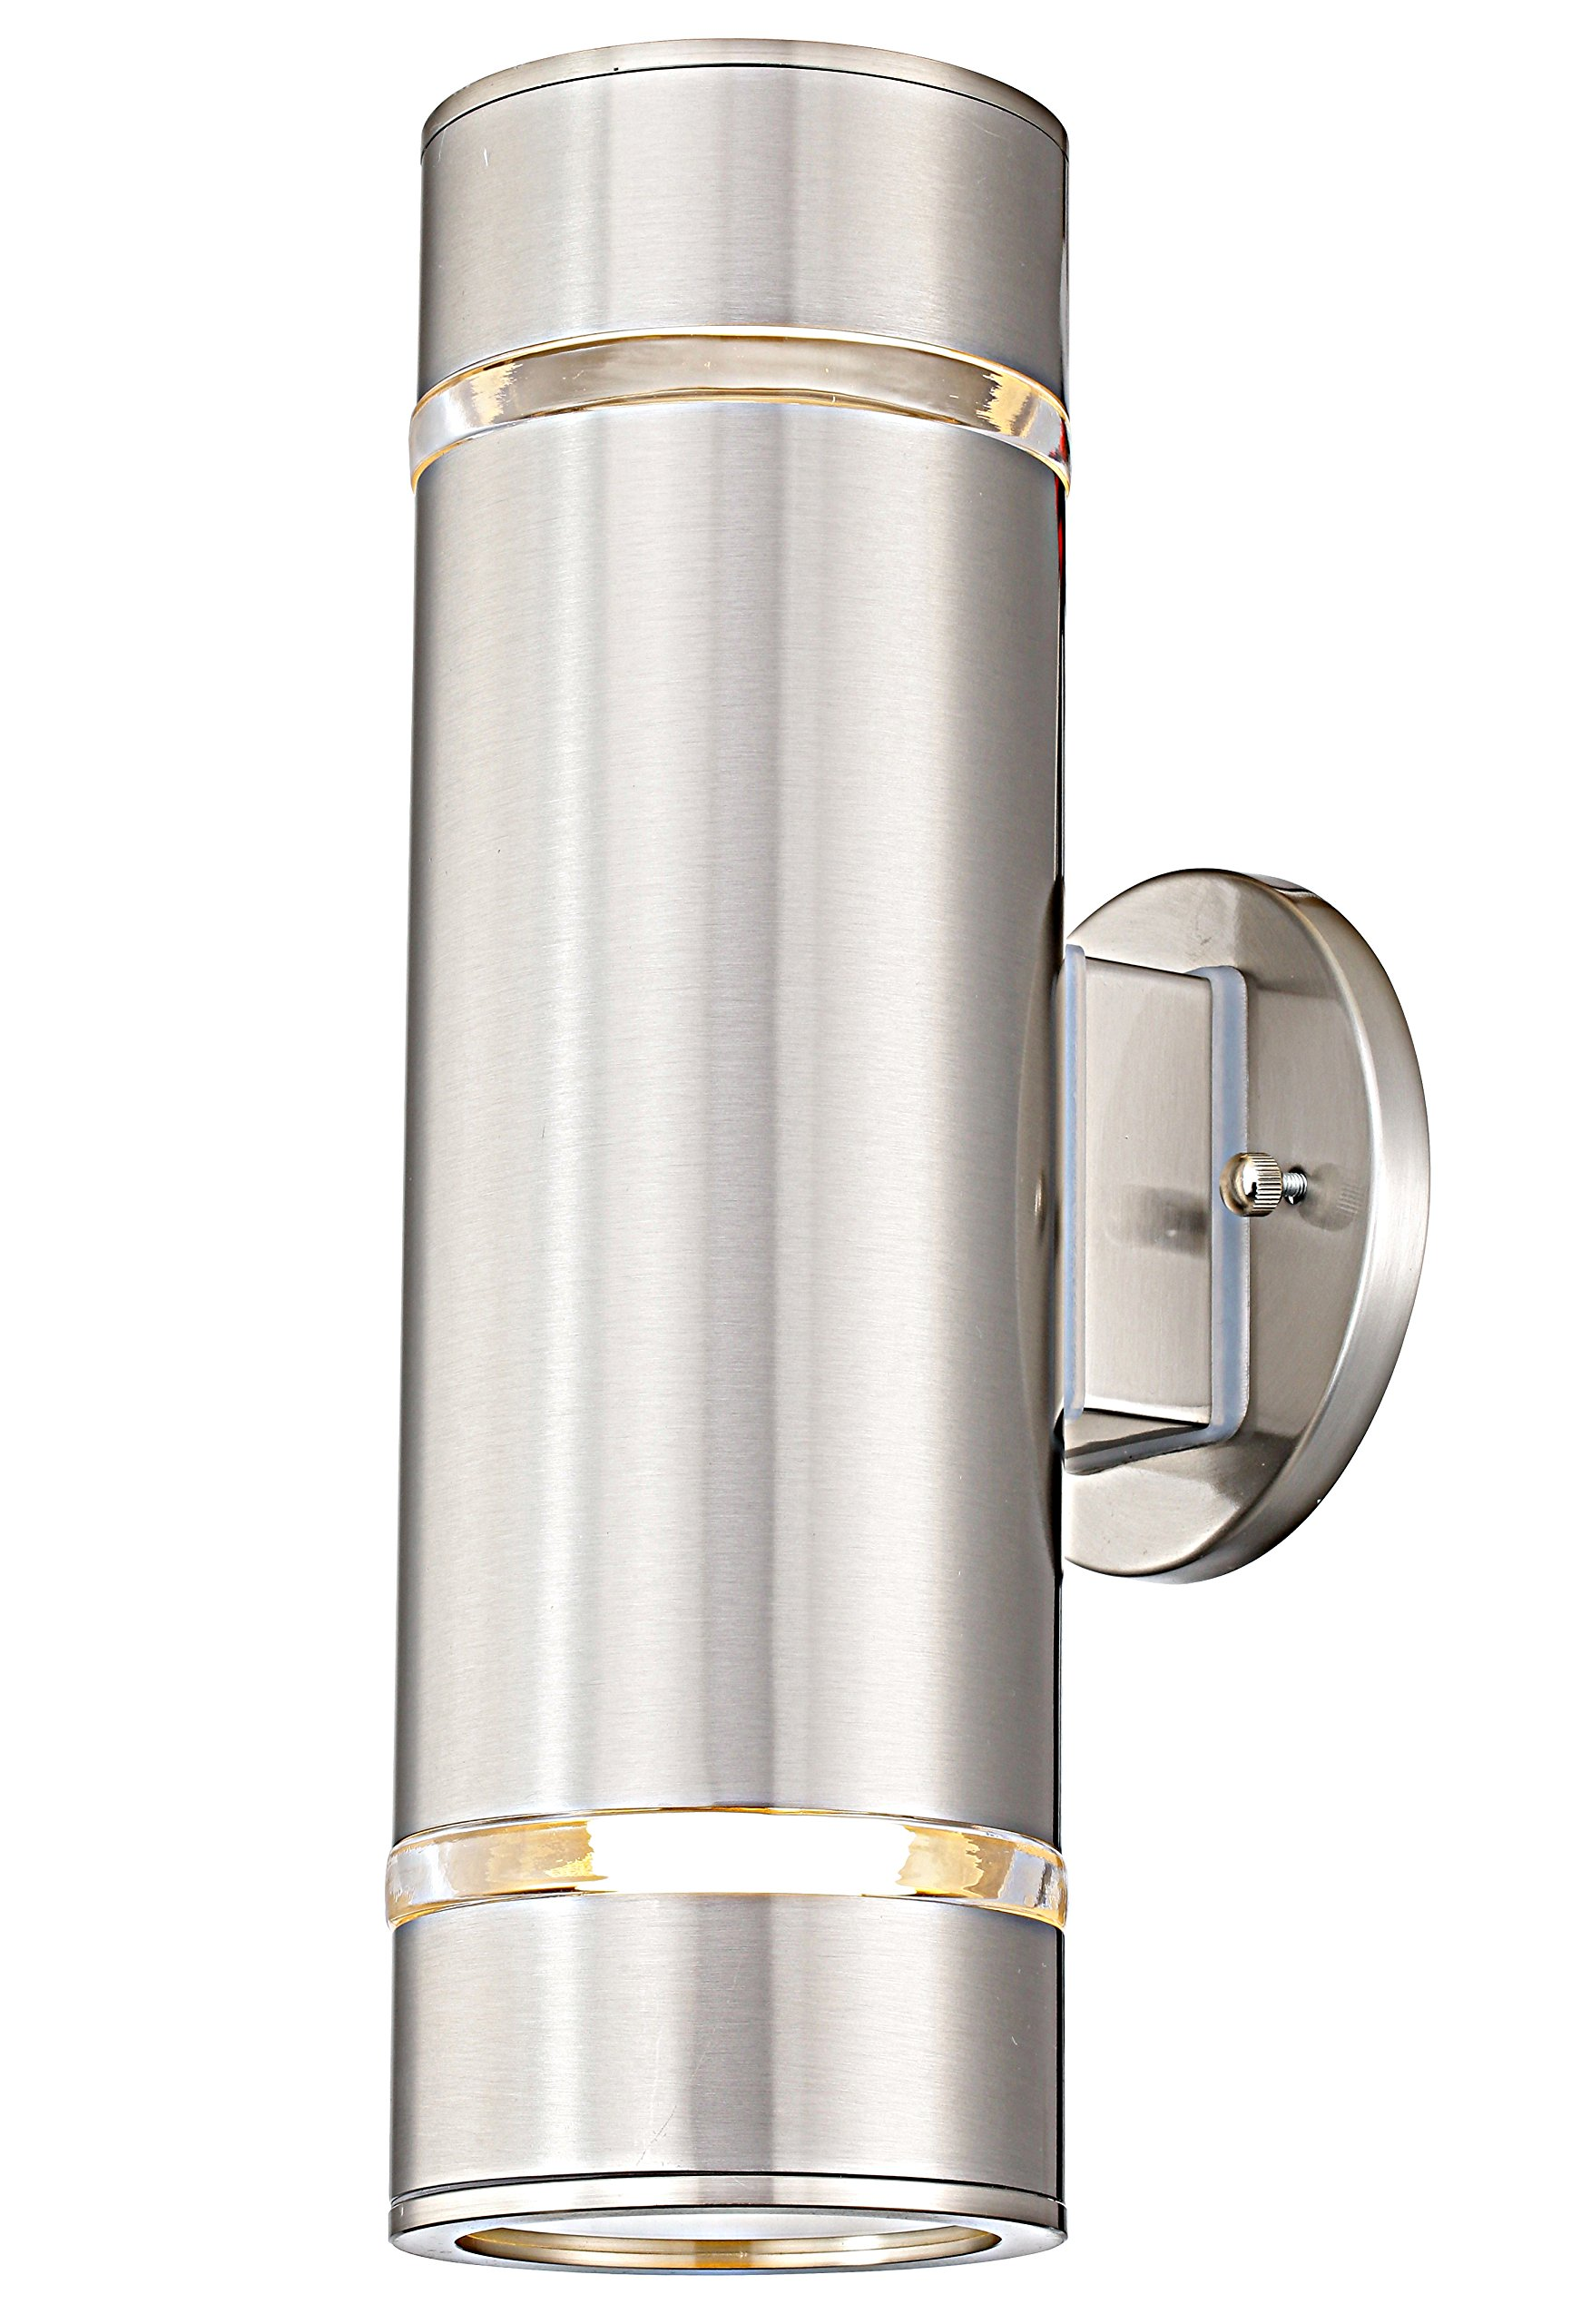 "Cerdeco WS-7698 Modern Porch Light [ UL-Listed ] Satin Nickel Finished Outdoor Wall Lamp Weather-Proof Cylinder Wall Sconce Suitable for Garden & Patio - ◆ Cerdeco contemporary streamlined design. Made of superior stainless steel & satin nickel finished. ◆ Weather proof & rust resistant (IP 64). Adapt to kinds of general weather conditions. ◆ Hard-Wired. 100v-220v available. Size: D:4"" x H:12.6"". Use 2*E26/E27 bulbs (Not Included). - patio, outdoor-lights, outdoor-decor - 81CwGtDa1GL -"